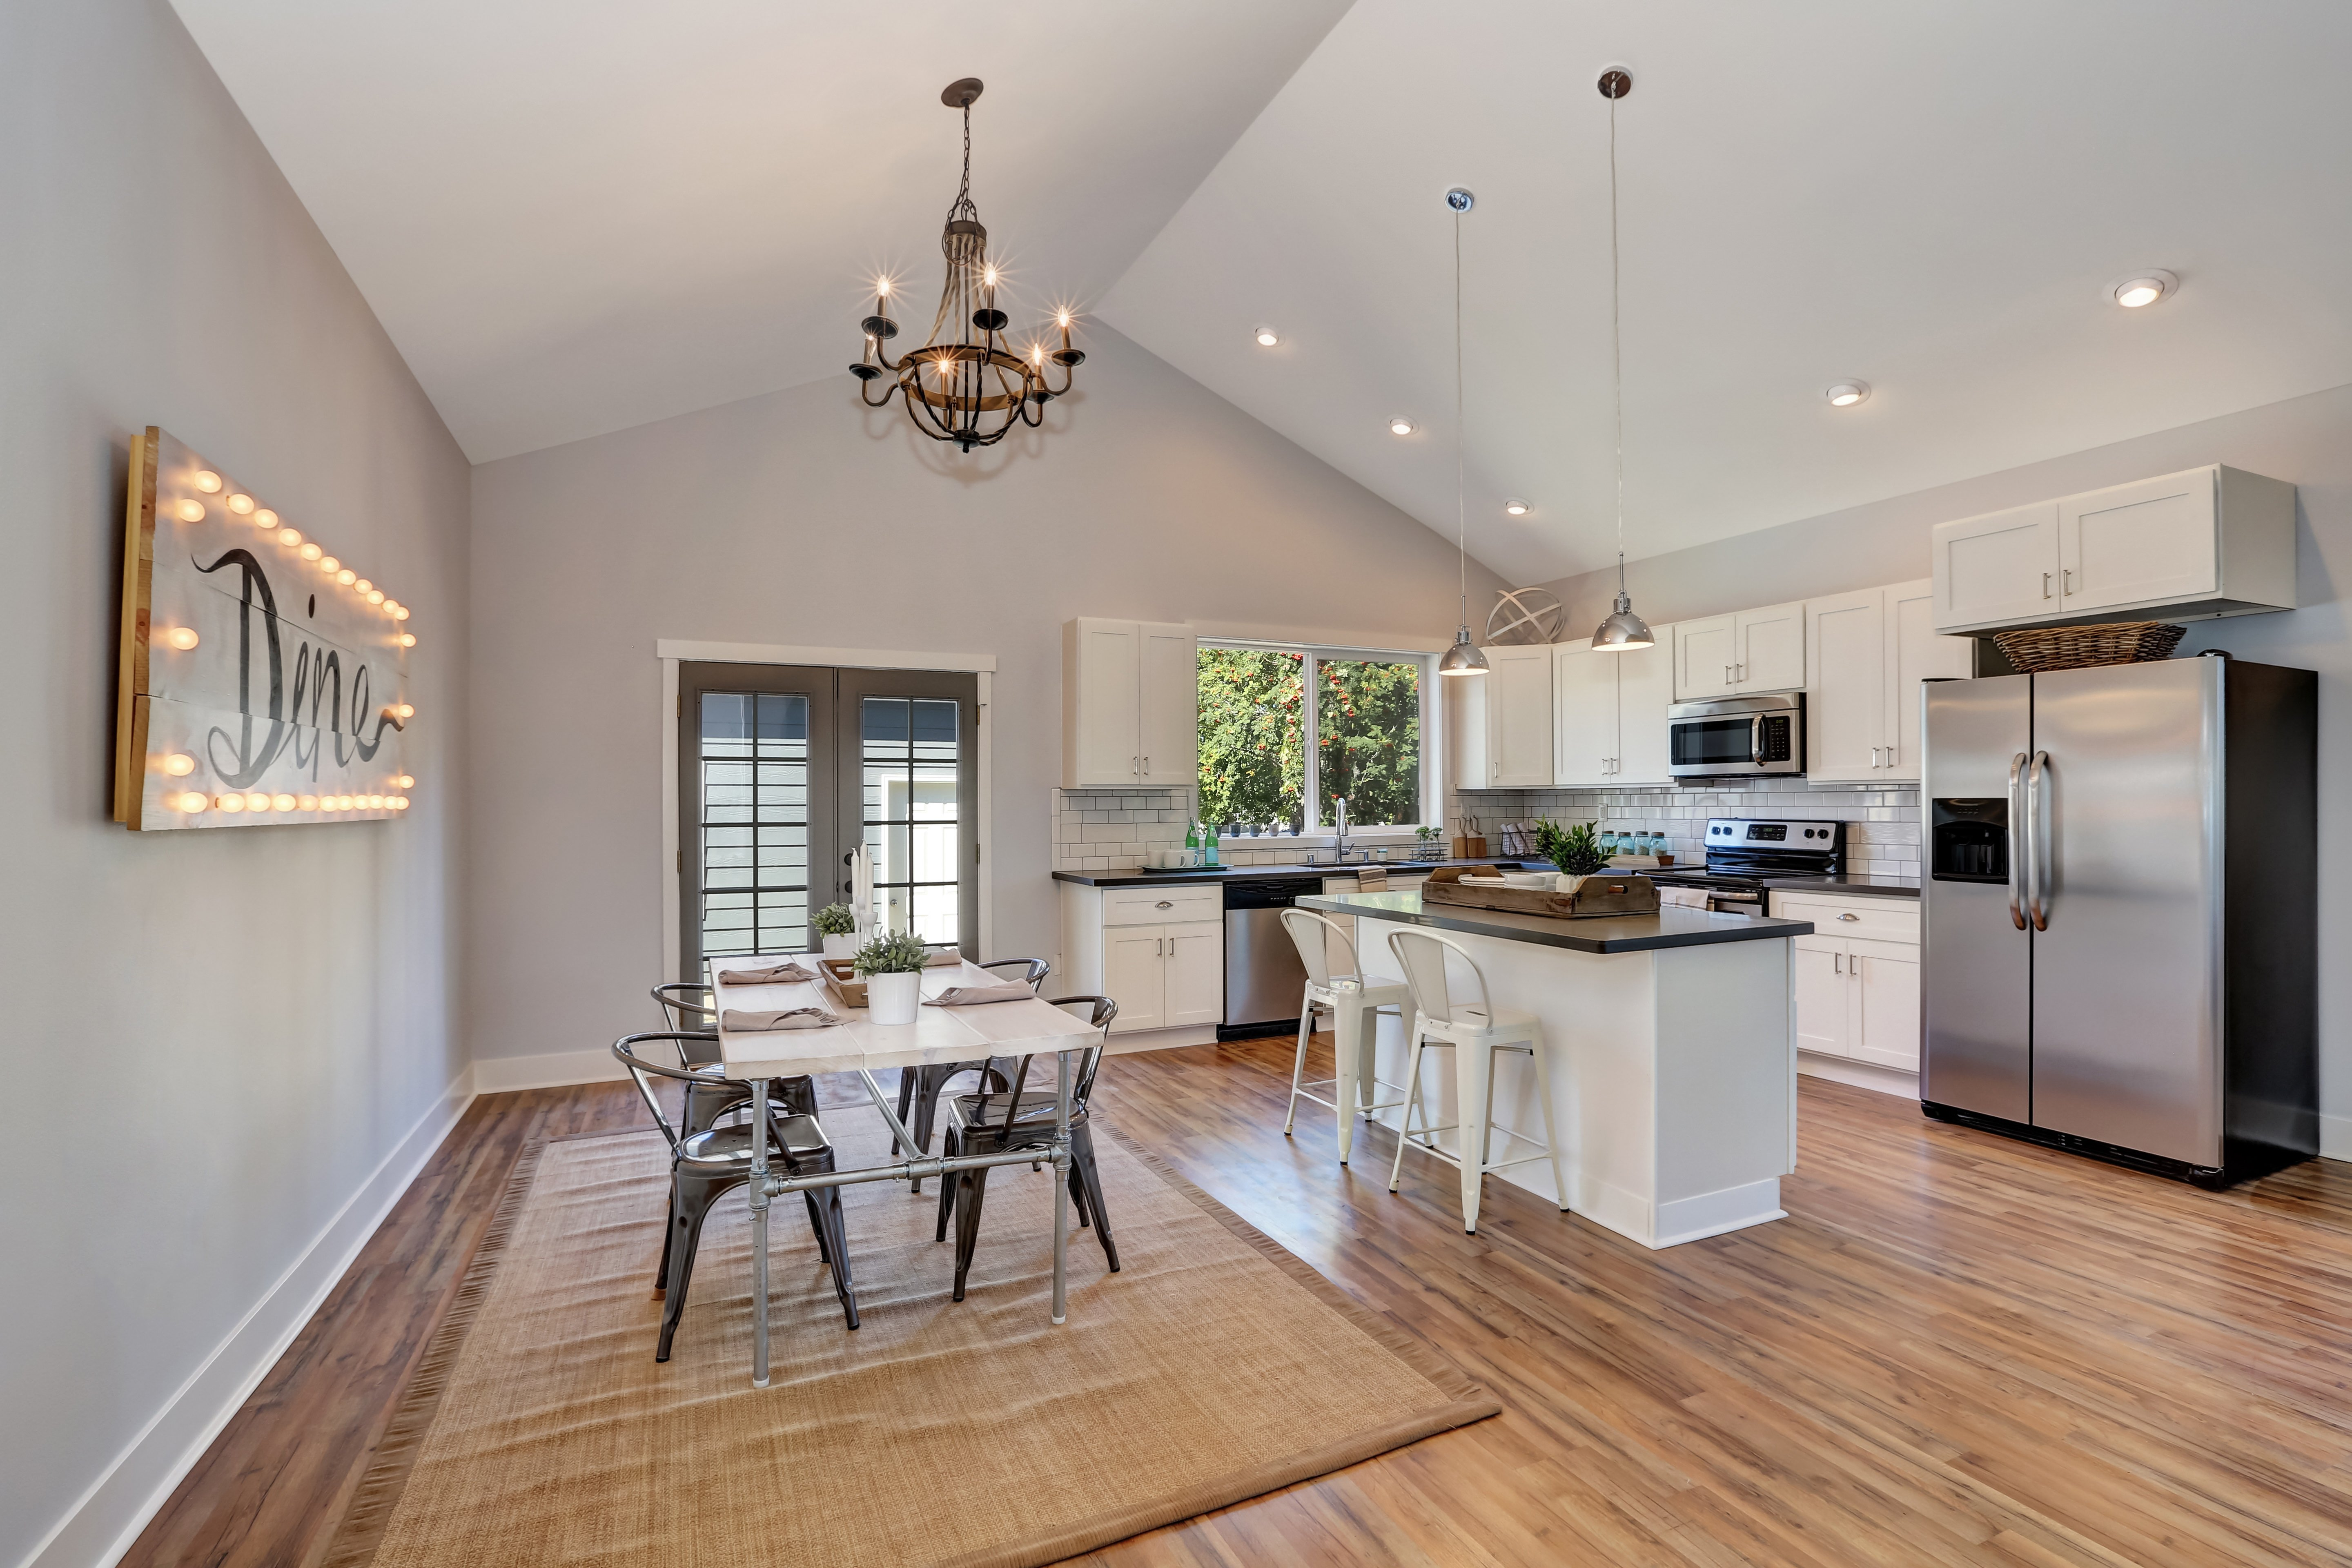 Large dine-in kitchen featuring hardwood floors and gray walls, along with a tall vaulted ceiling with recessed lights, pendant lights and a chandelier.